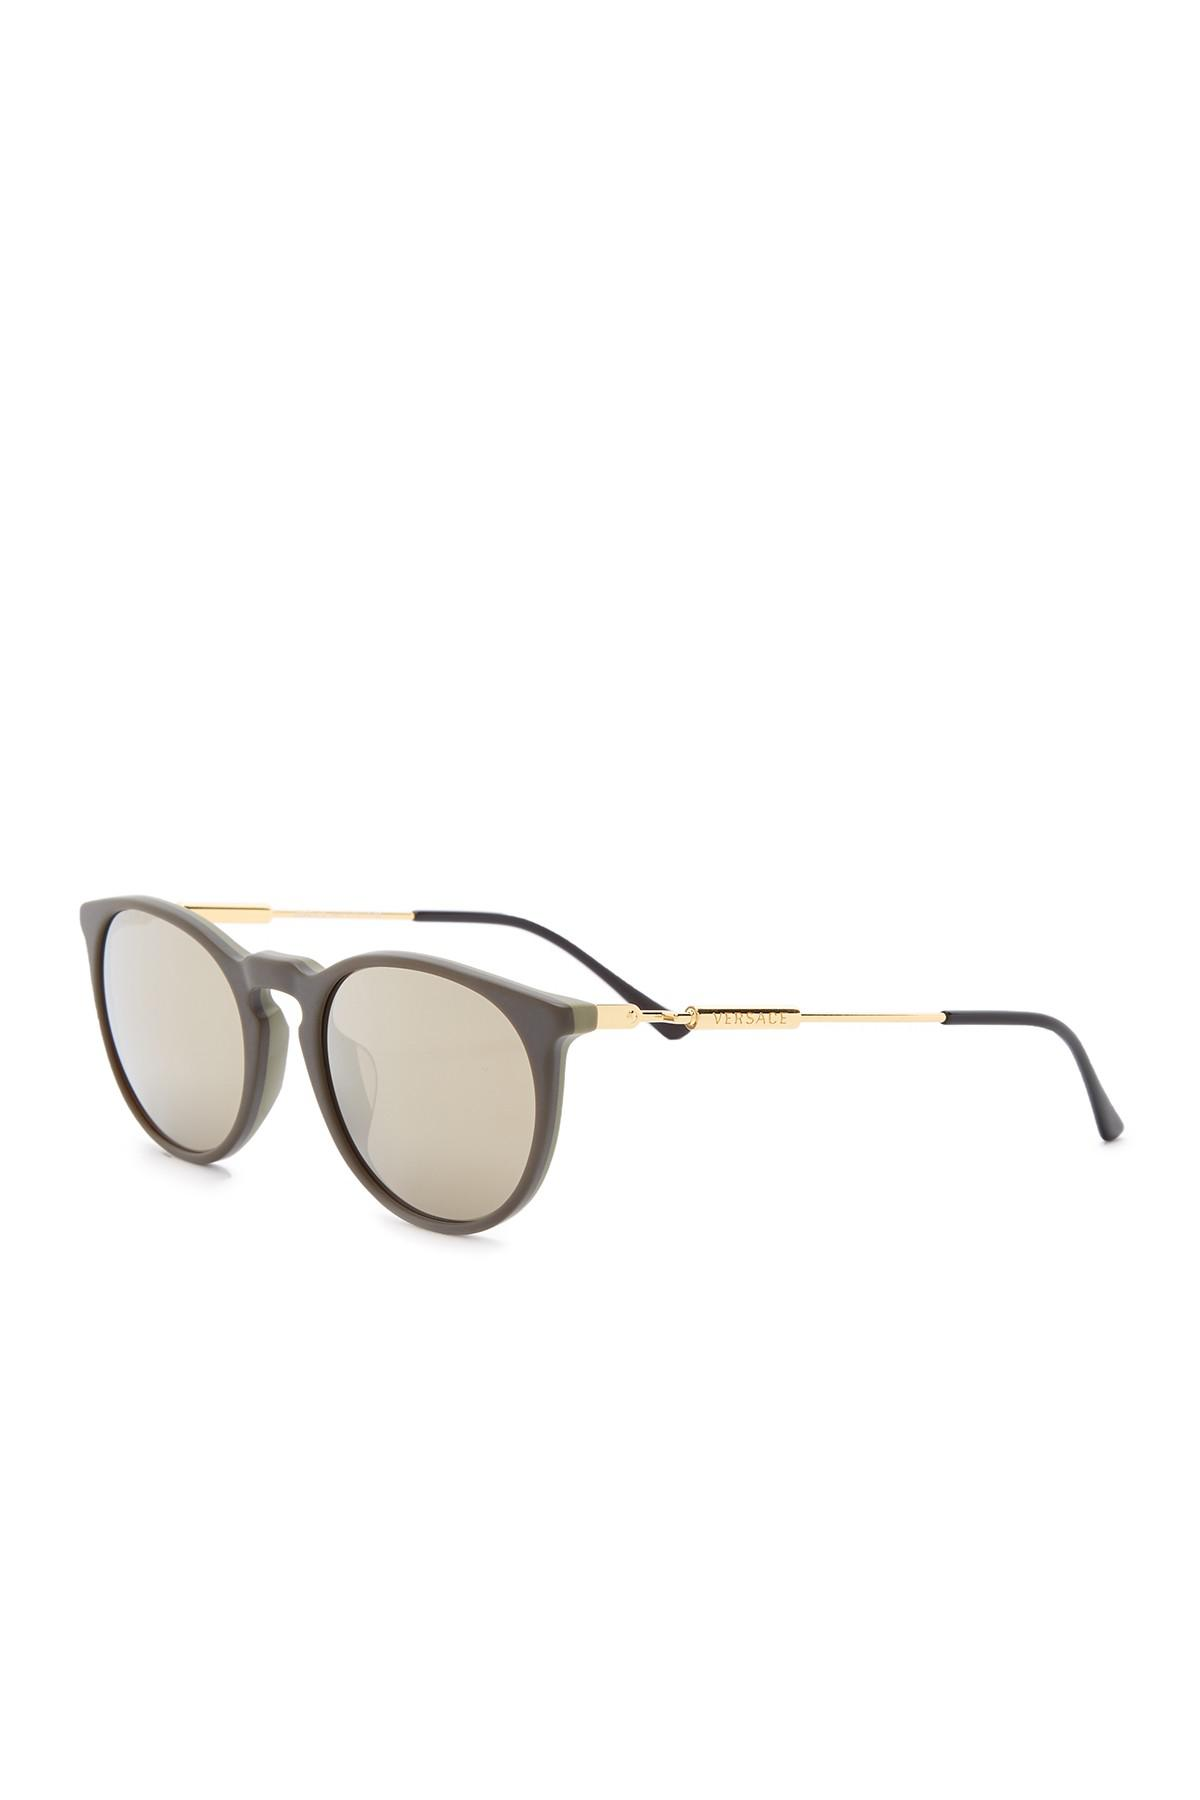 fabb082ab0b7 Lyst - Versace Pop Chic 52mm Round Sunglasses in Green